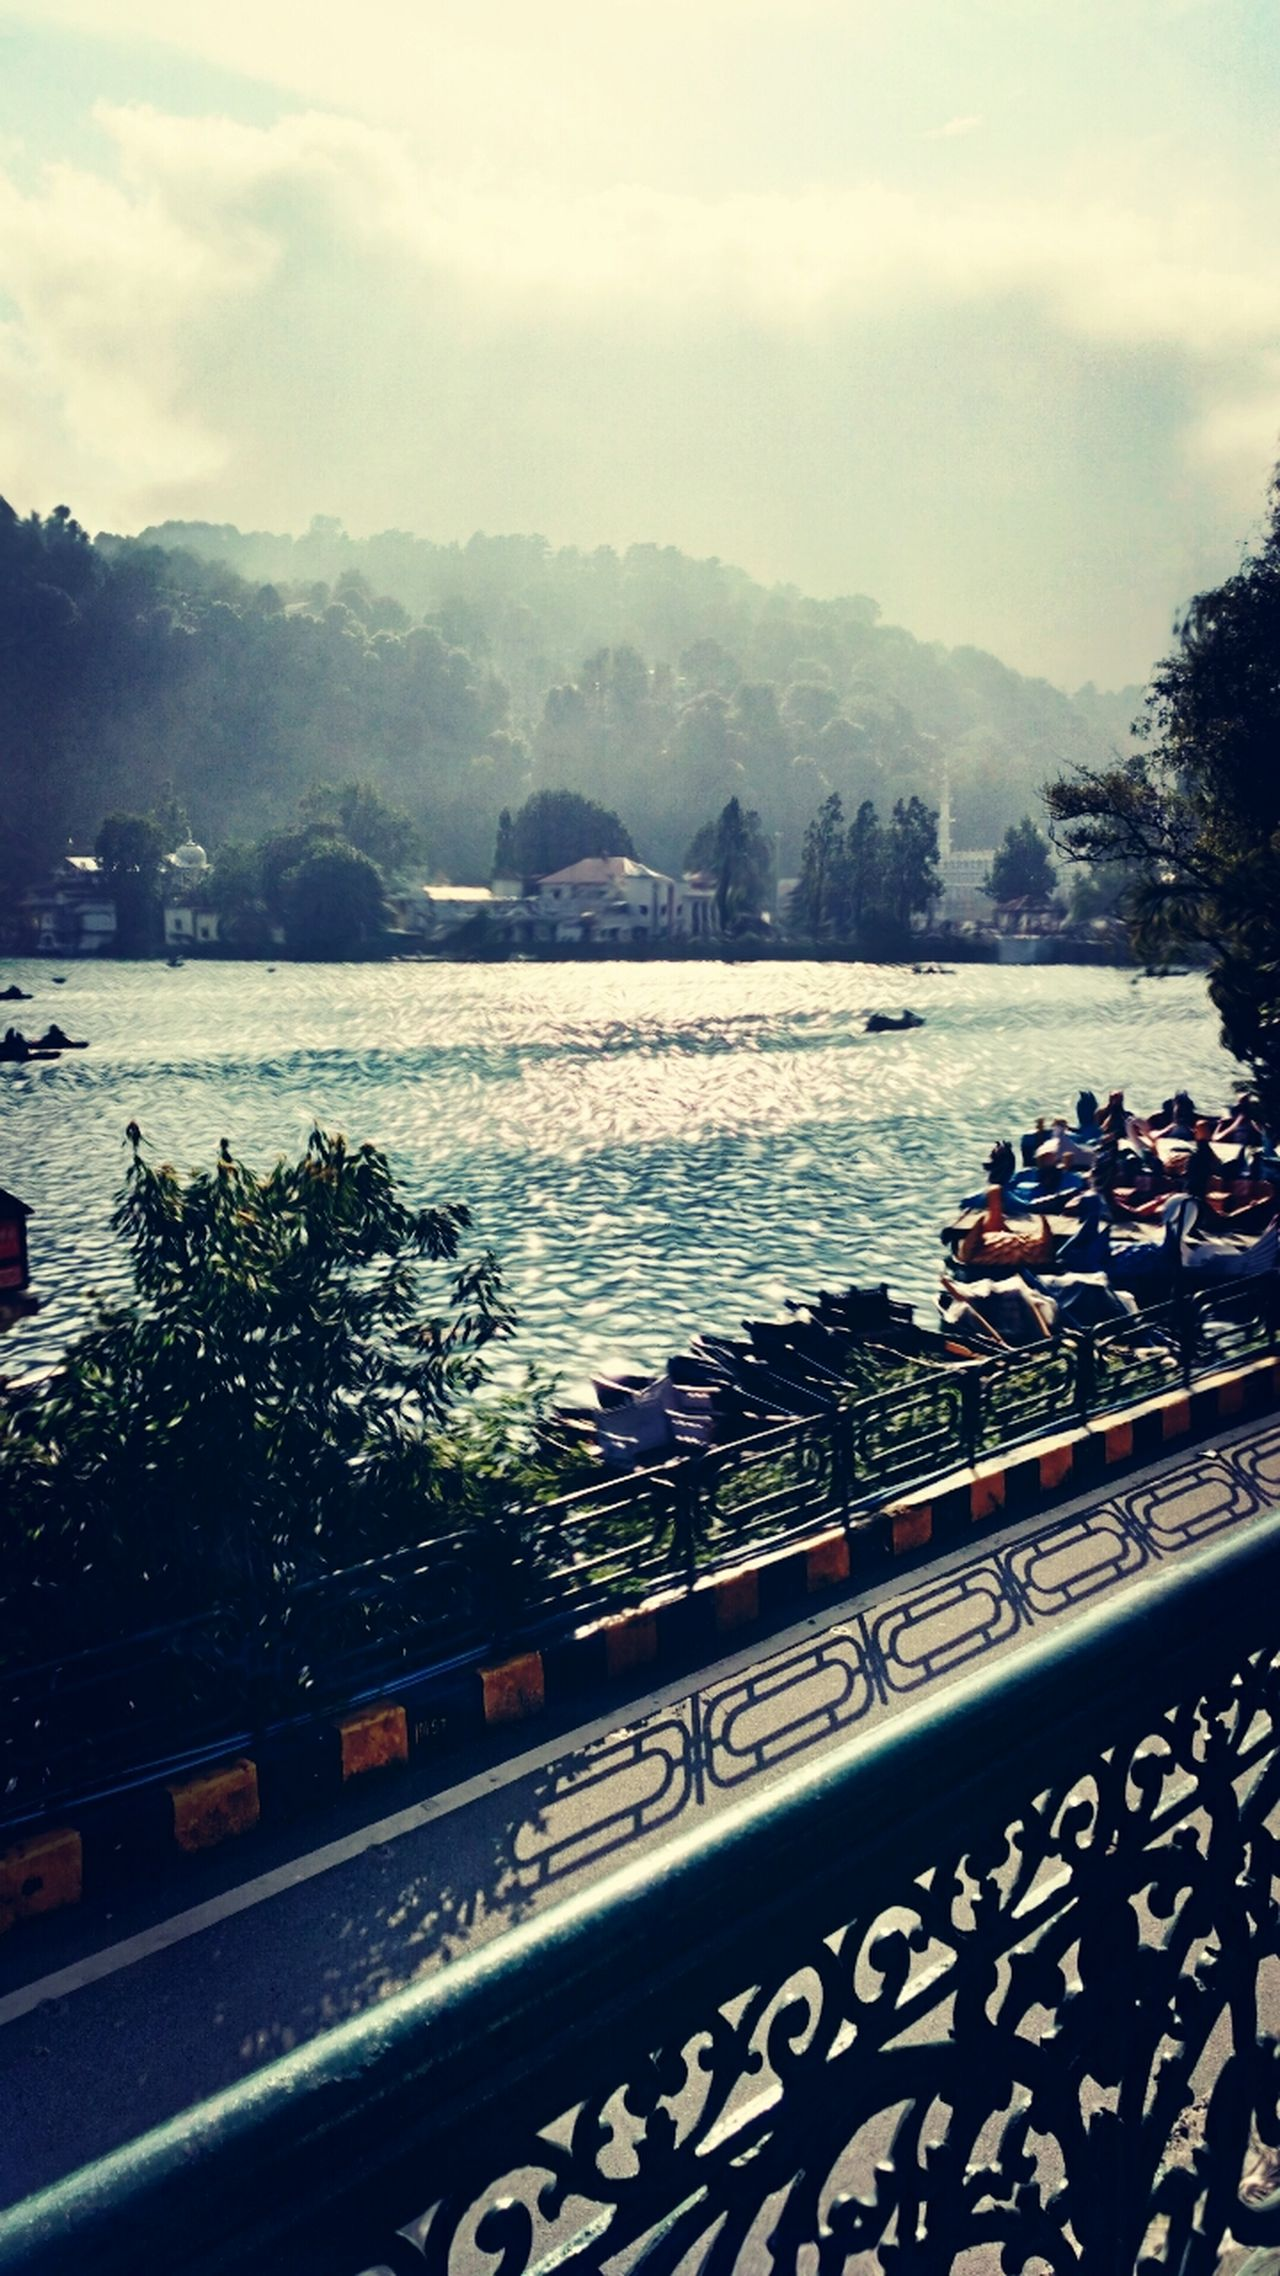 A bEauTiful pIc bY mE Of nAini jhEel in nAiniTaL.... Scenics Tree Water Scenics Tranquil Scene Tranquility Mountain Sky Cloud River Town Day Nature Beauty In Nature Outdoors Non-urban Scene Calm Solitude Riverbank Mountain Range Cloud - Sky First Eyeem Photo